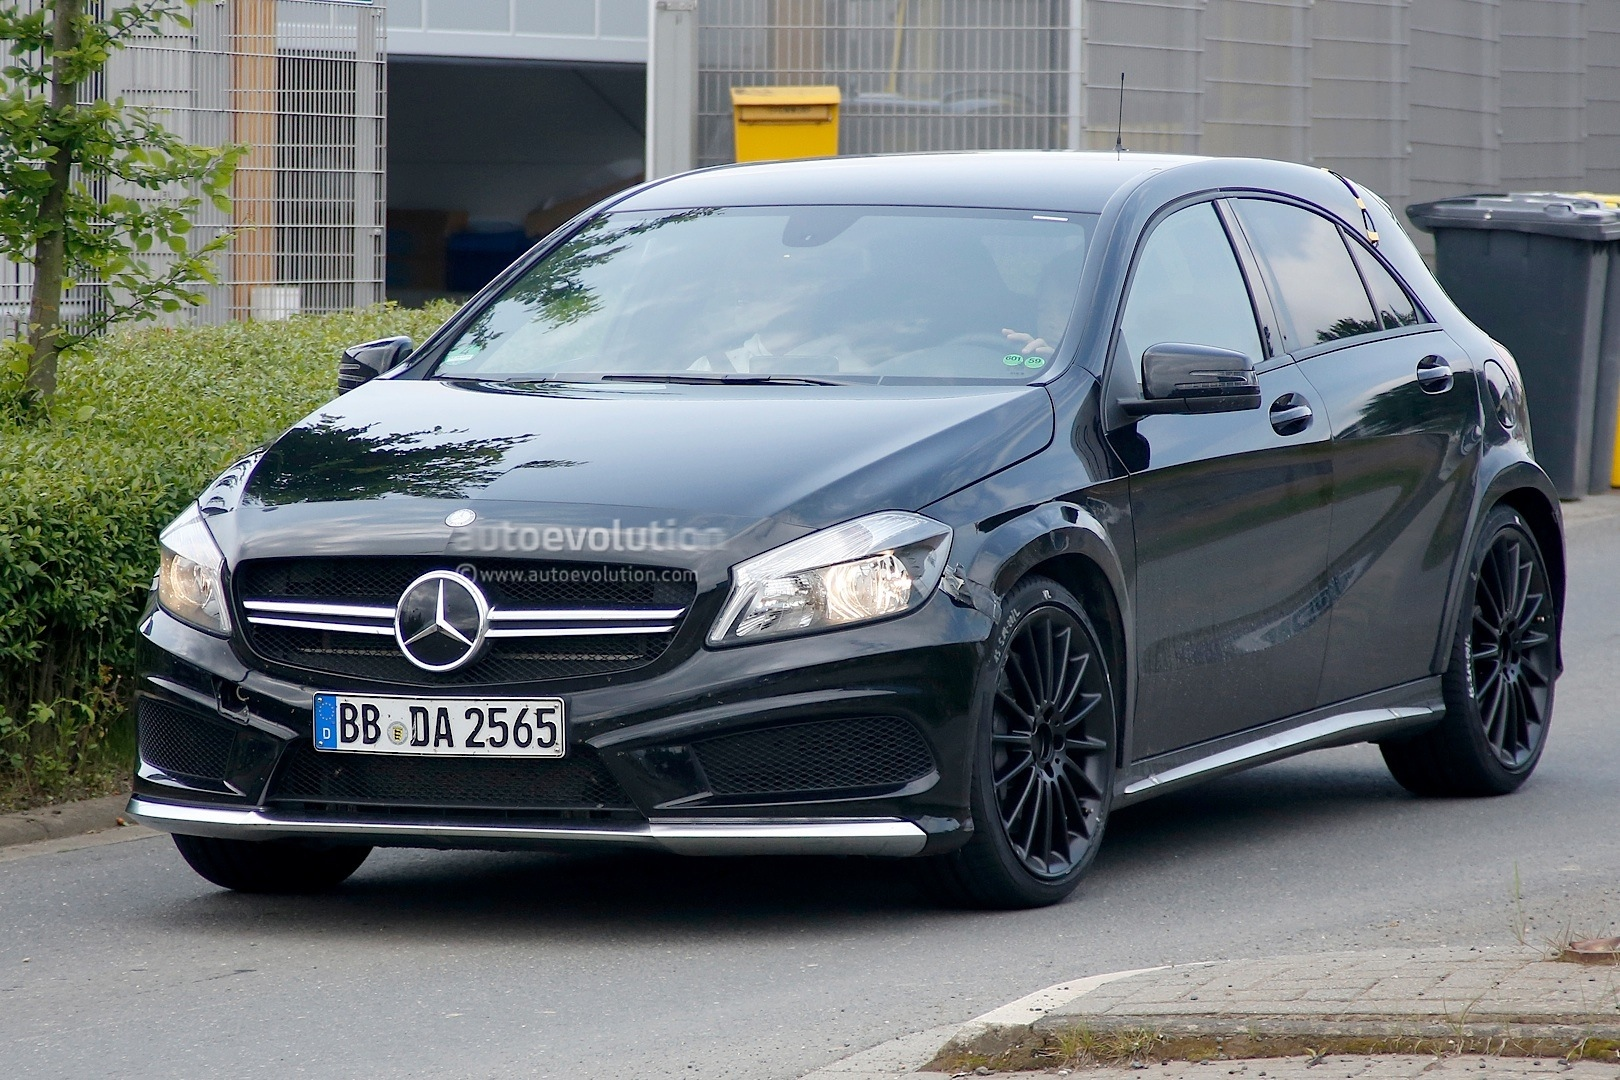 exclusive a45 amg black series spotted testing autoevolution. Black Bedroom Furniture Sets. Home Design Ideas